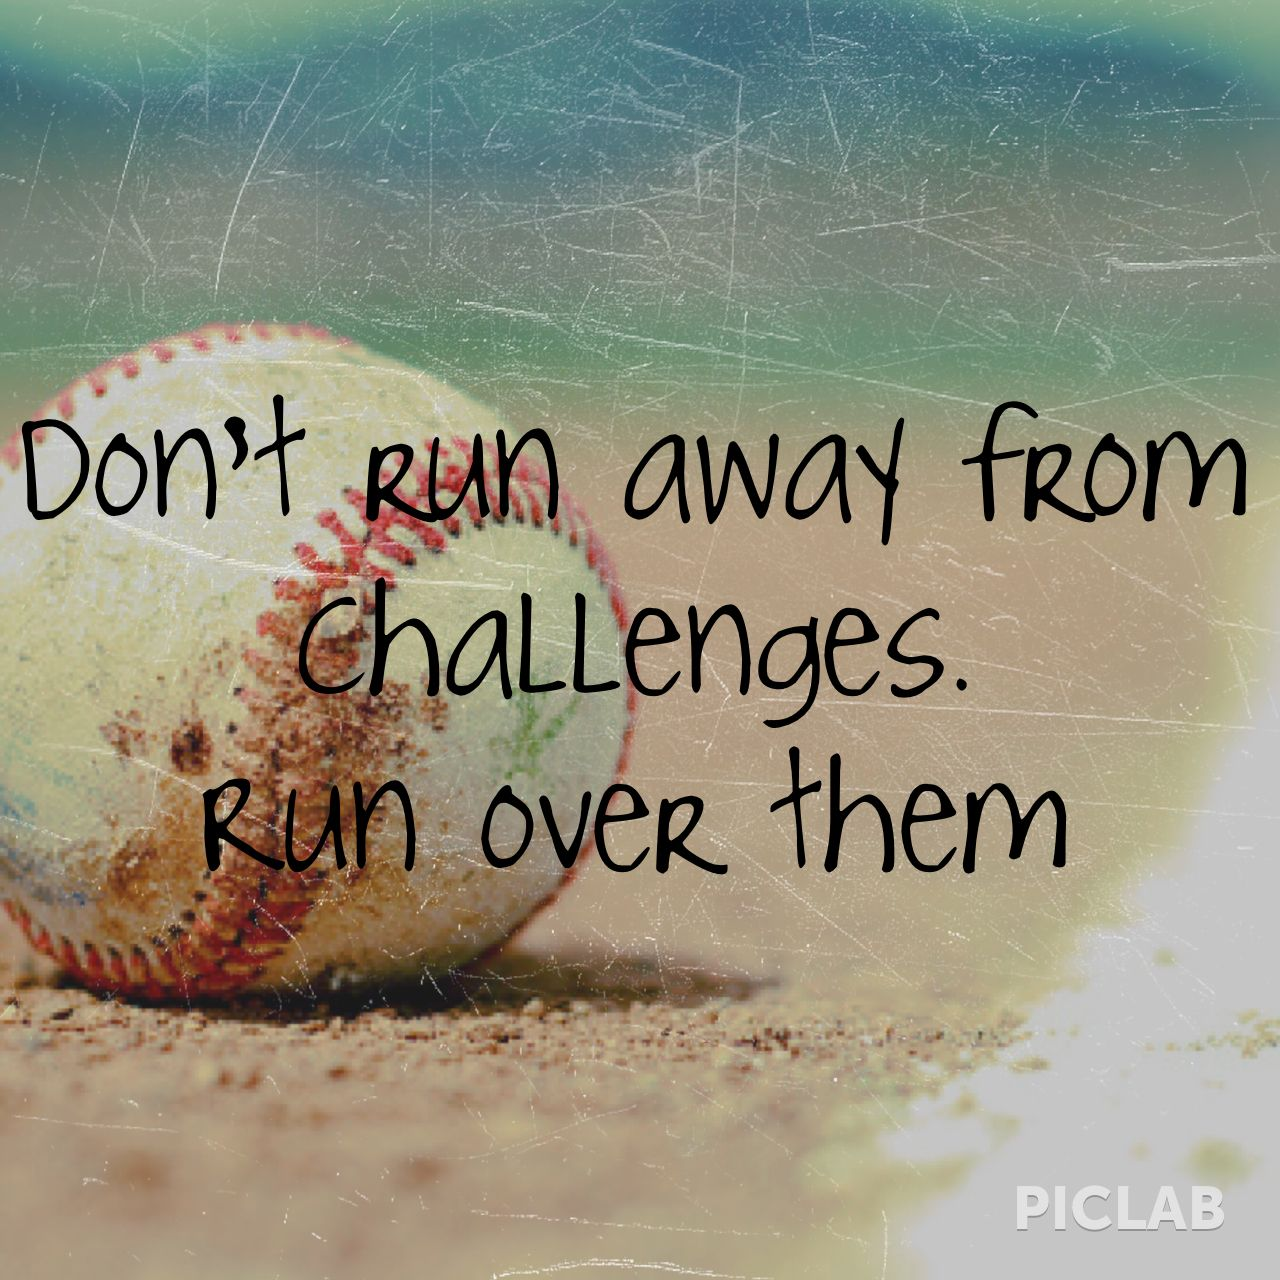 Softball Life Quotes And Then Get Ejected For The Remainder Of The Game Softball